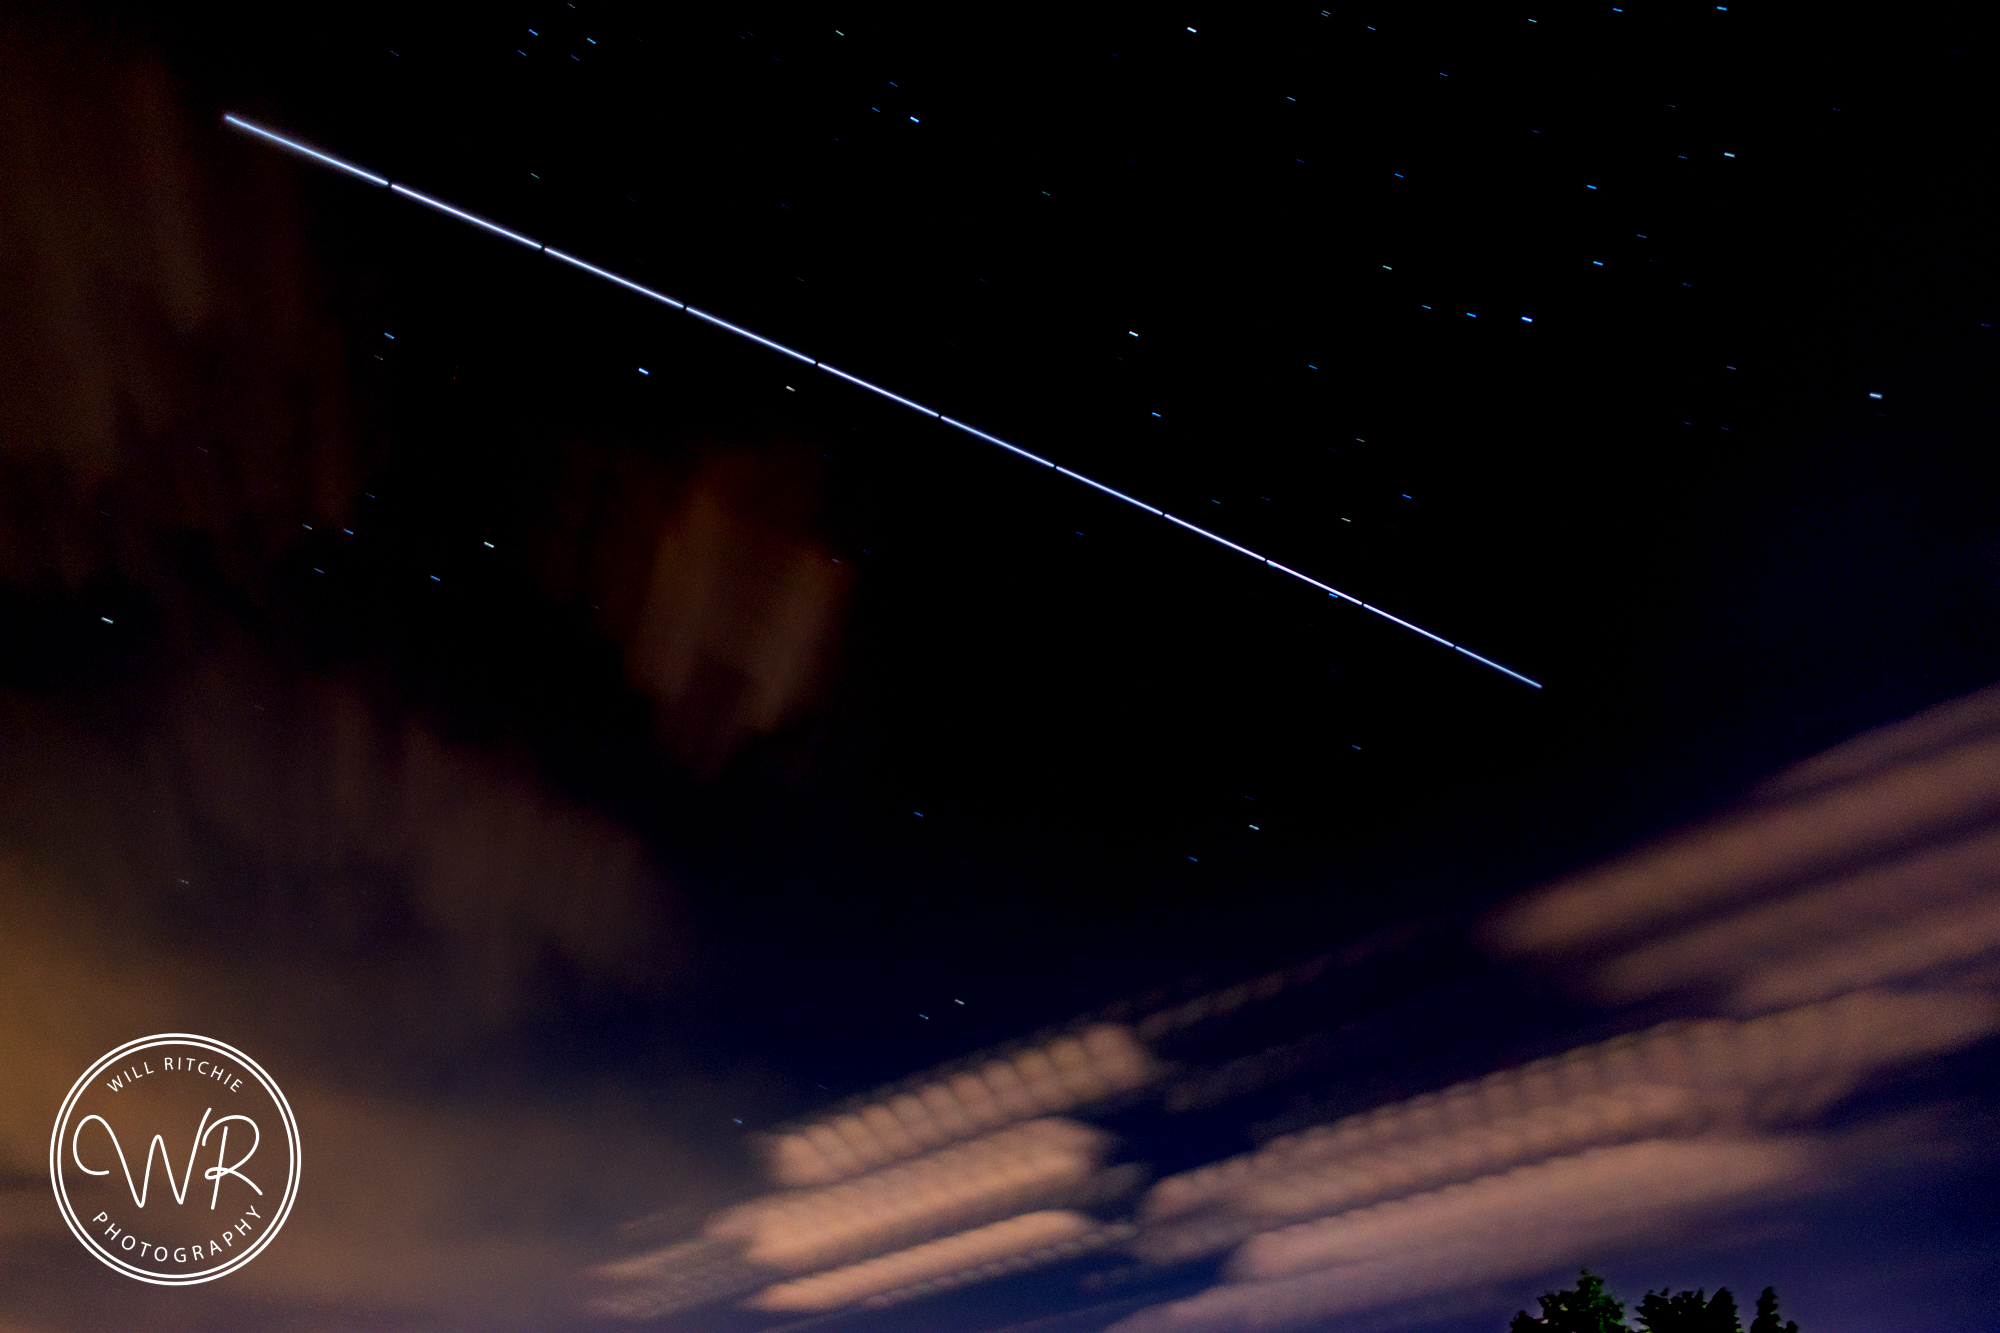 The ISS passing over Blackpool last night